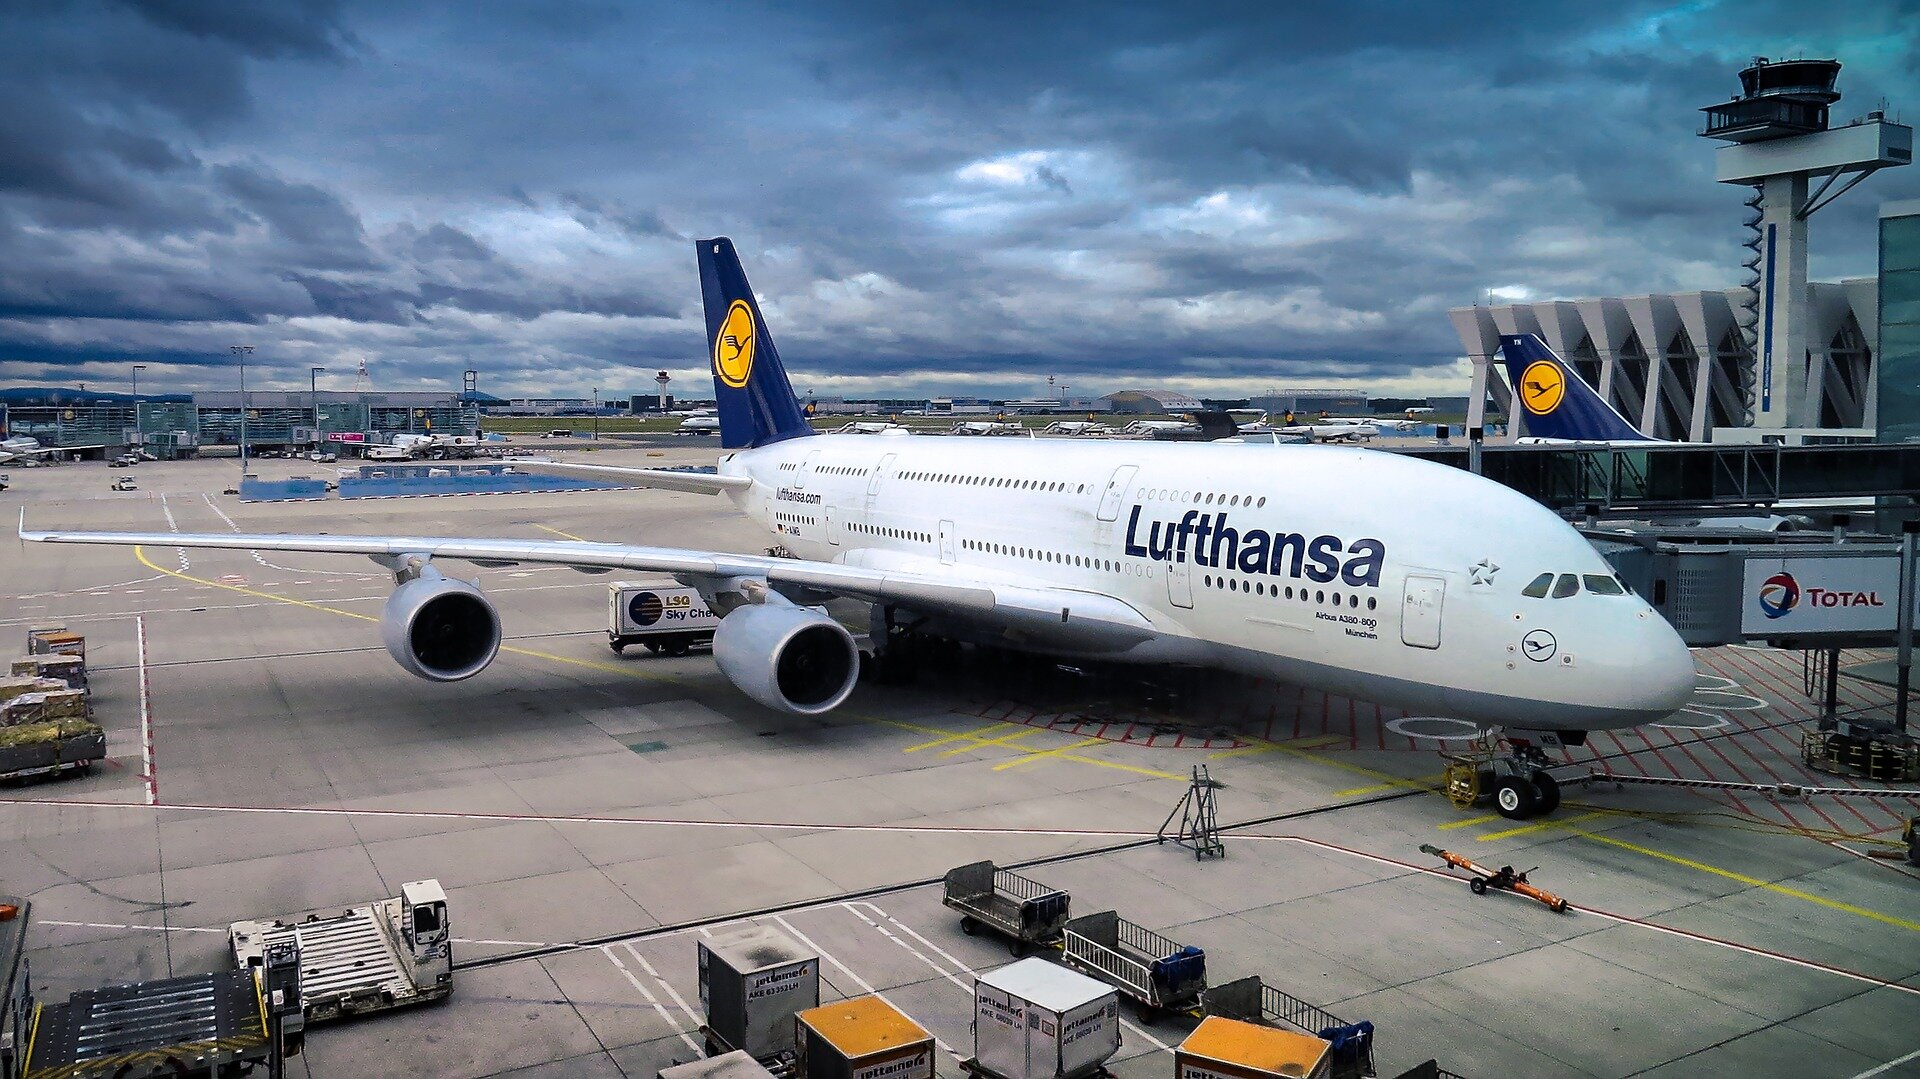 Lufthansa to cancel up to 25% of flights due to virus